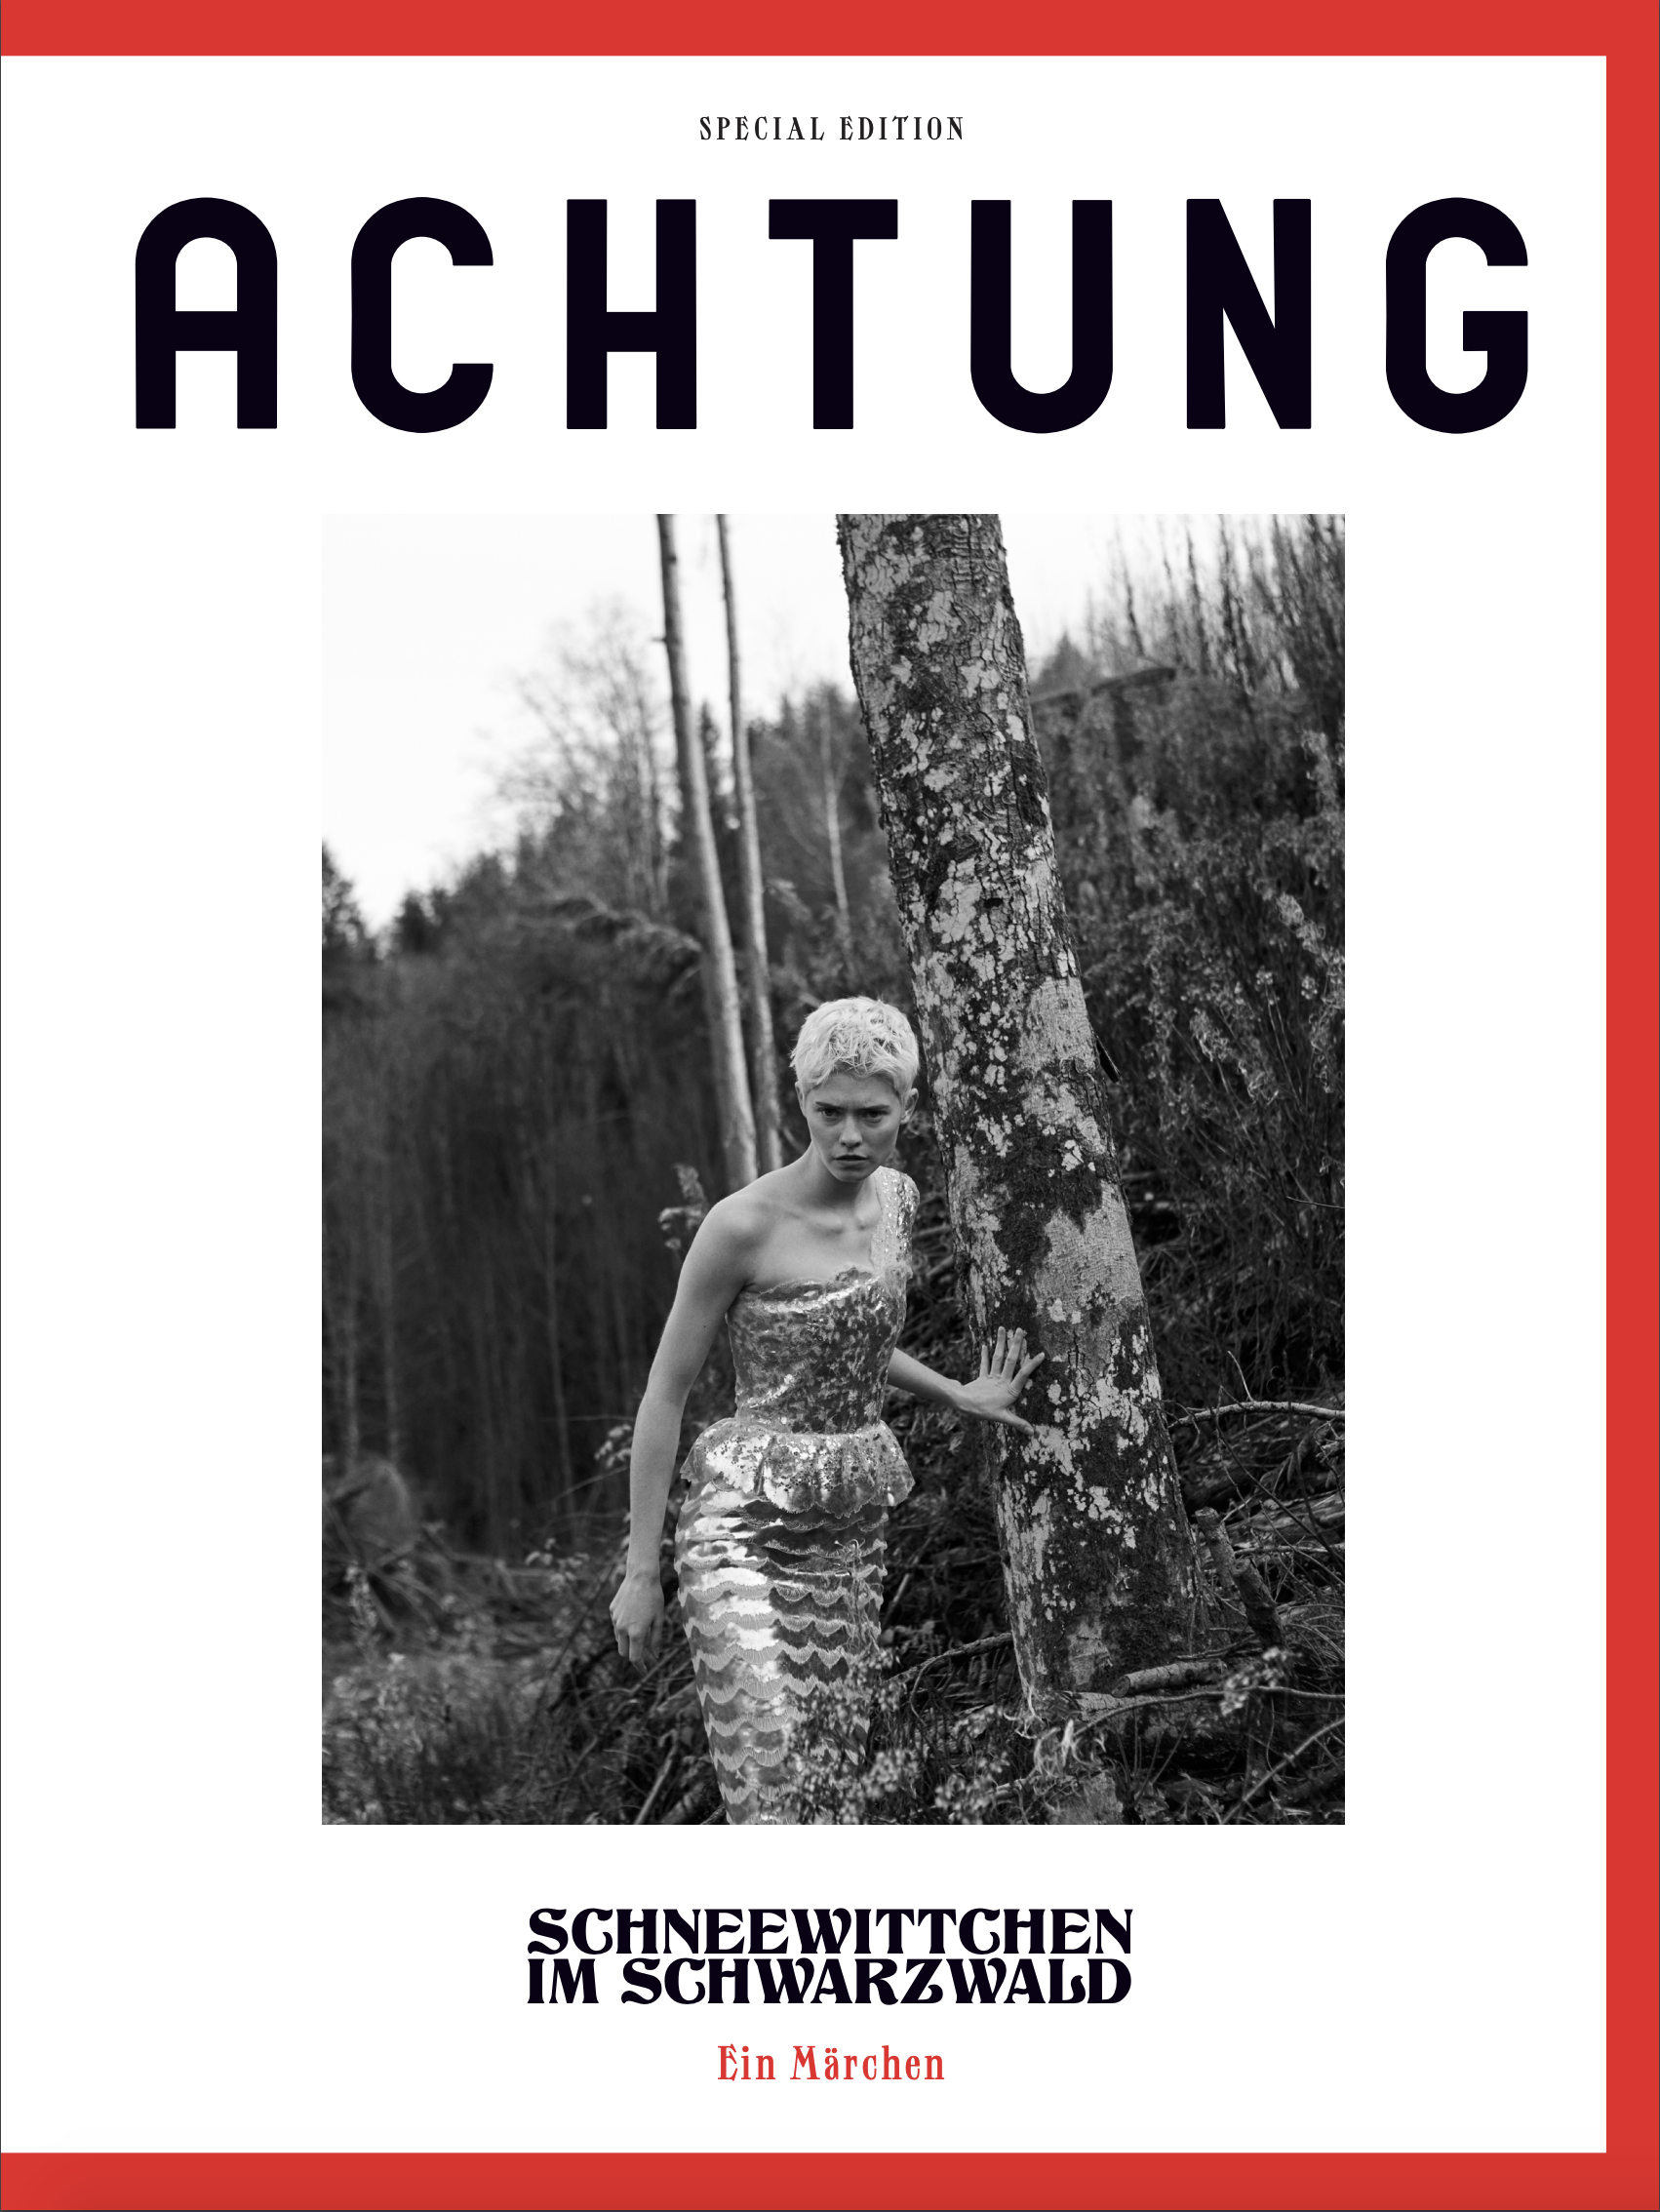 The cover of a special edition of Achtung, shot in Germany's Black Forest.